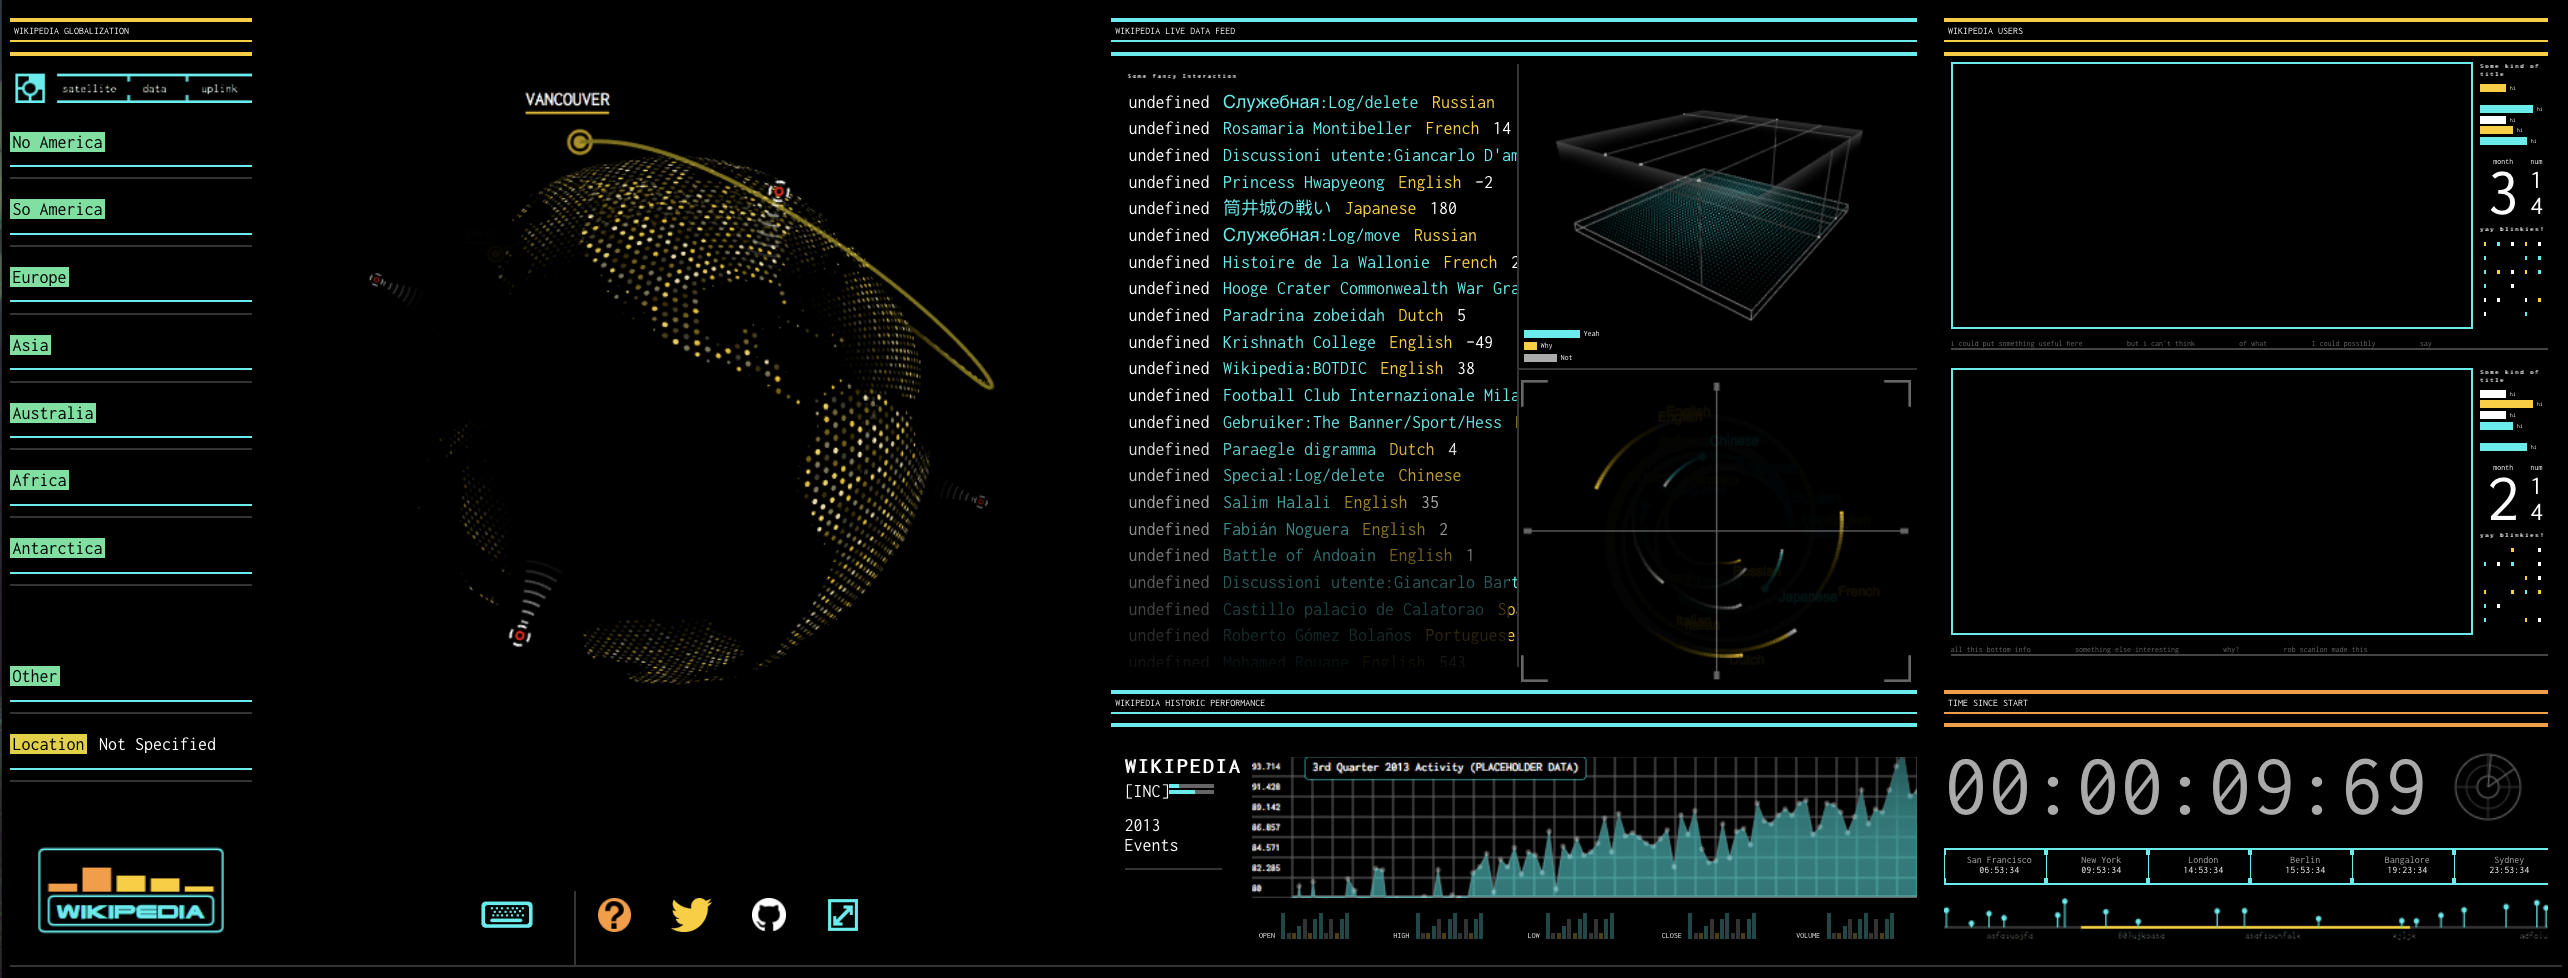 User interface from Tron Legacy boardroom scene recreated in HTML